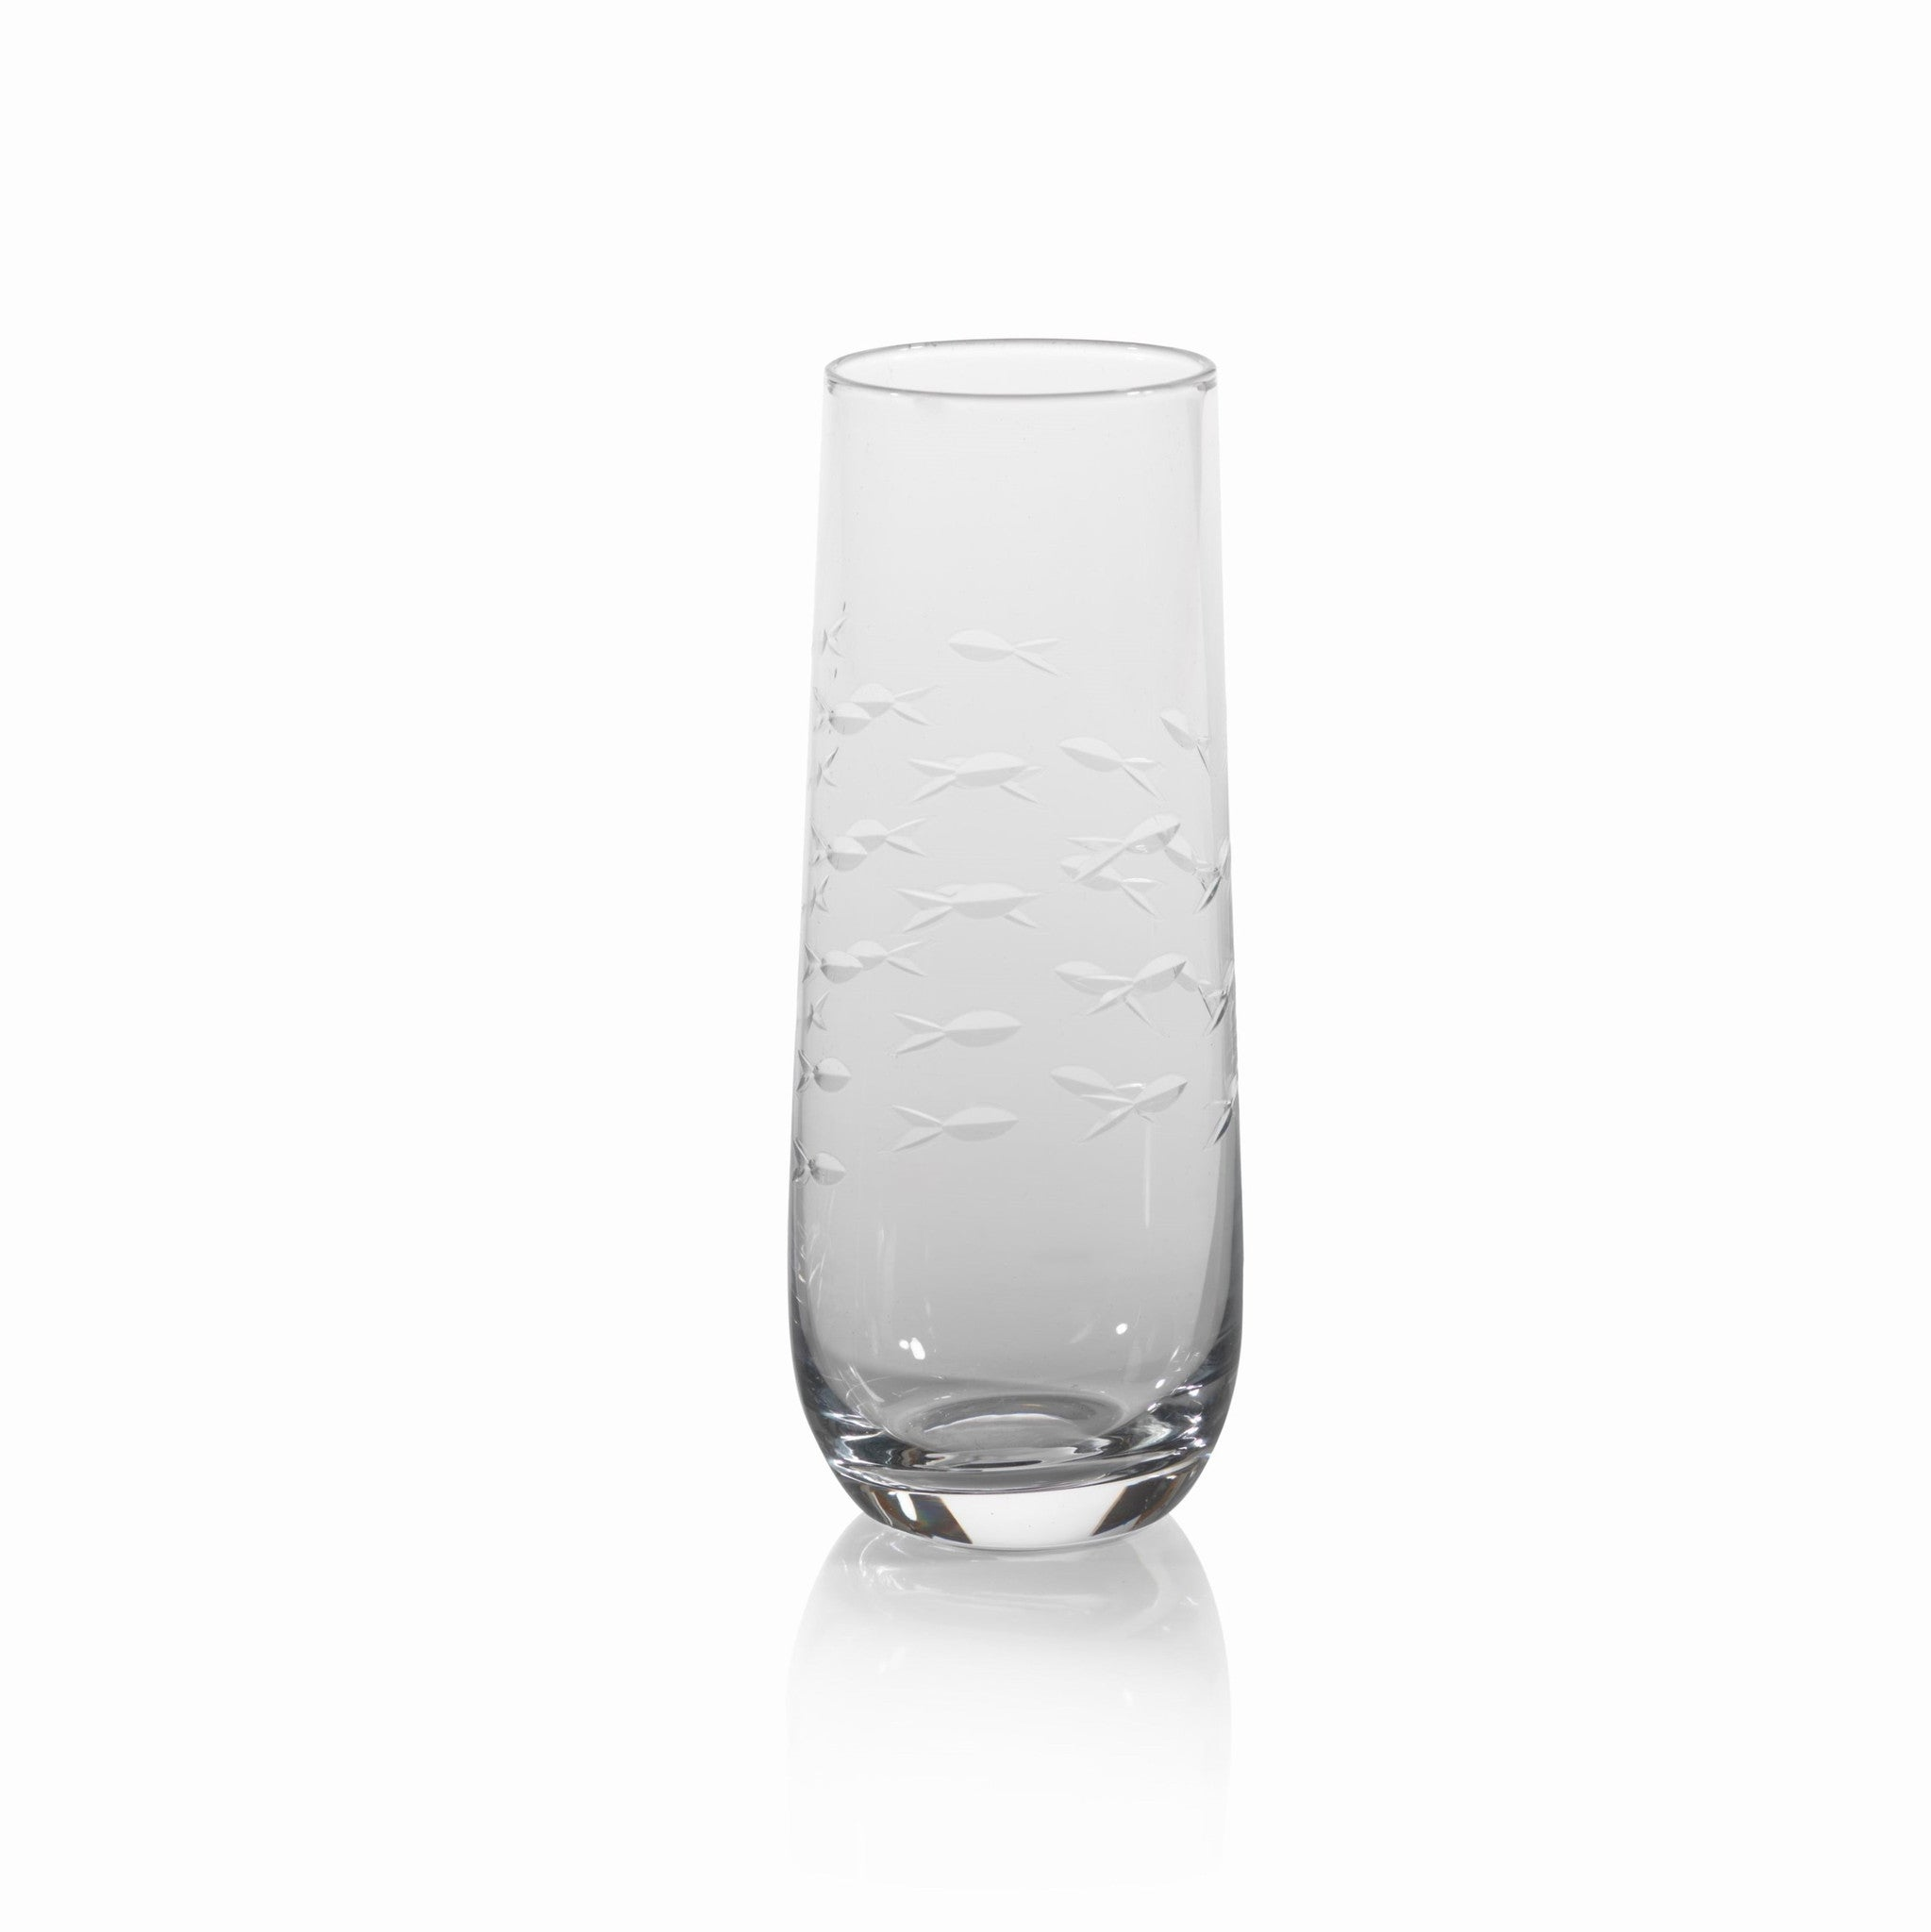 Coral Beach Fish Cut Stemless Glasses - s/4 - CARLYLE AVENUE